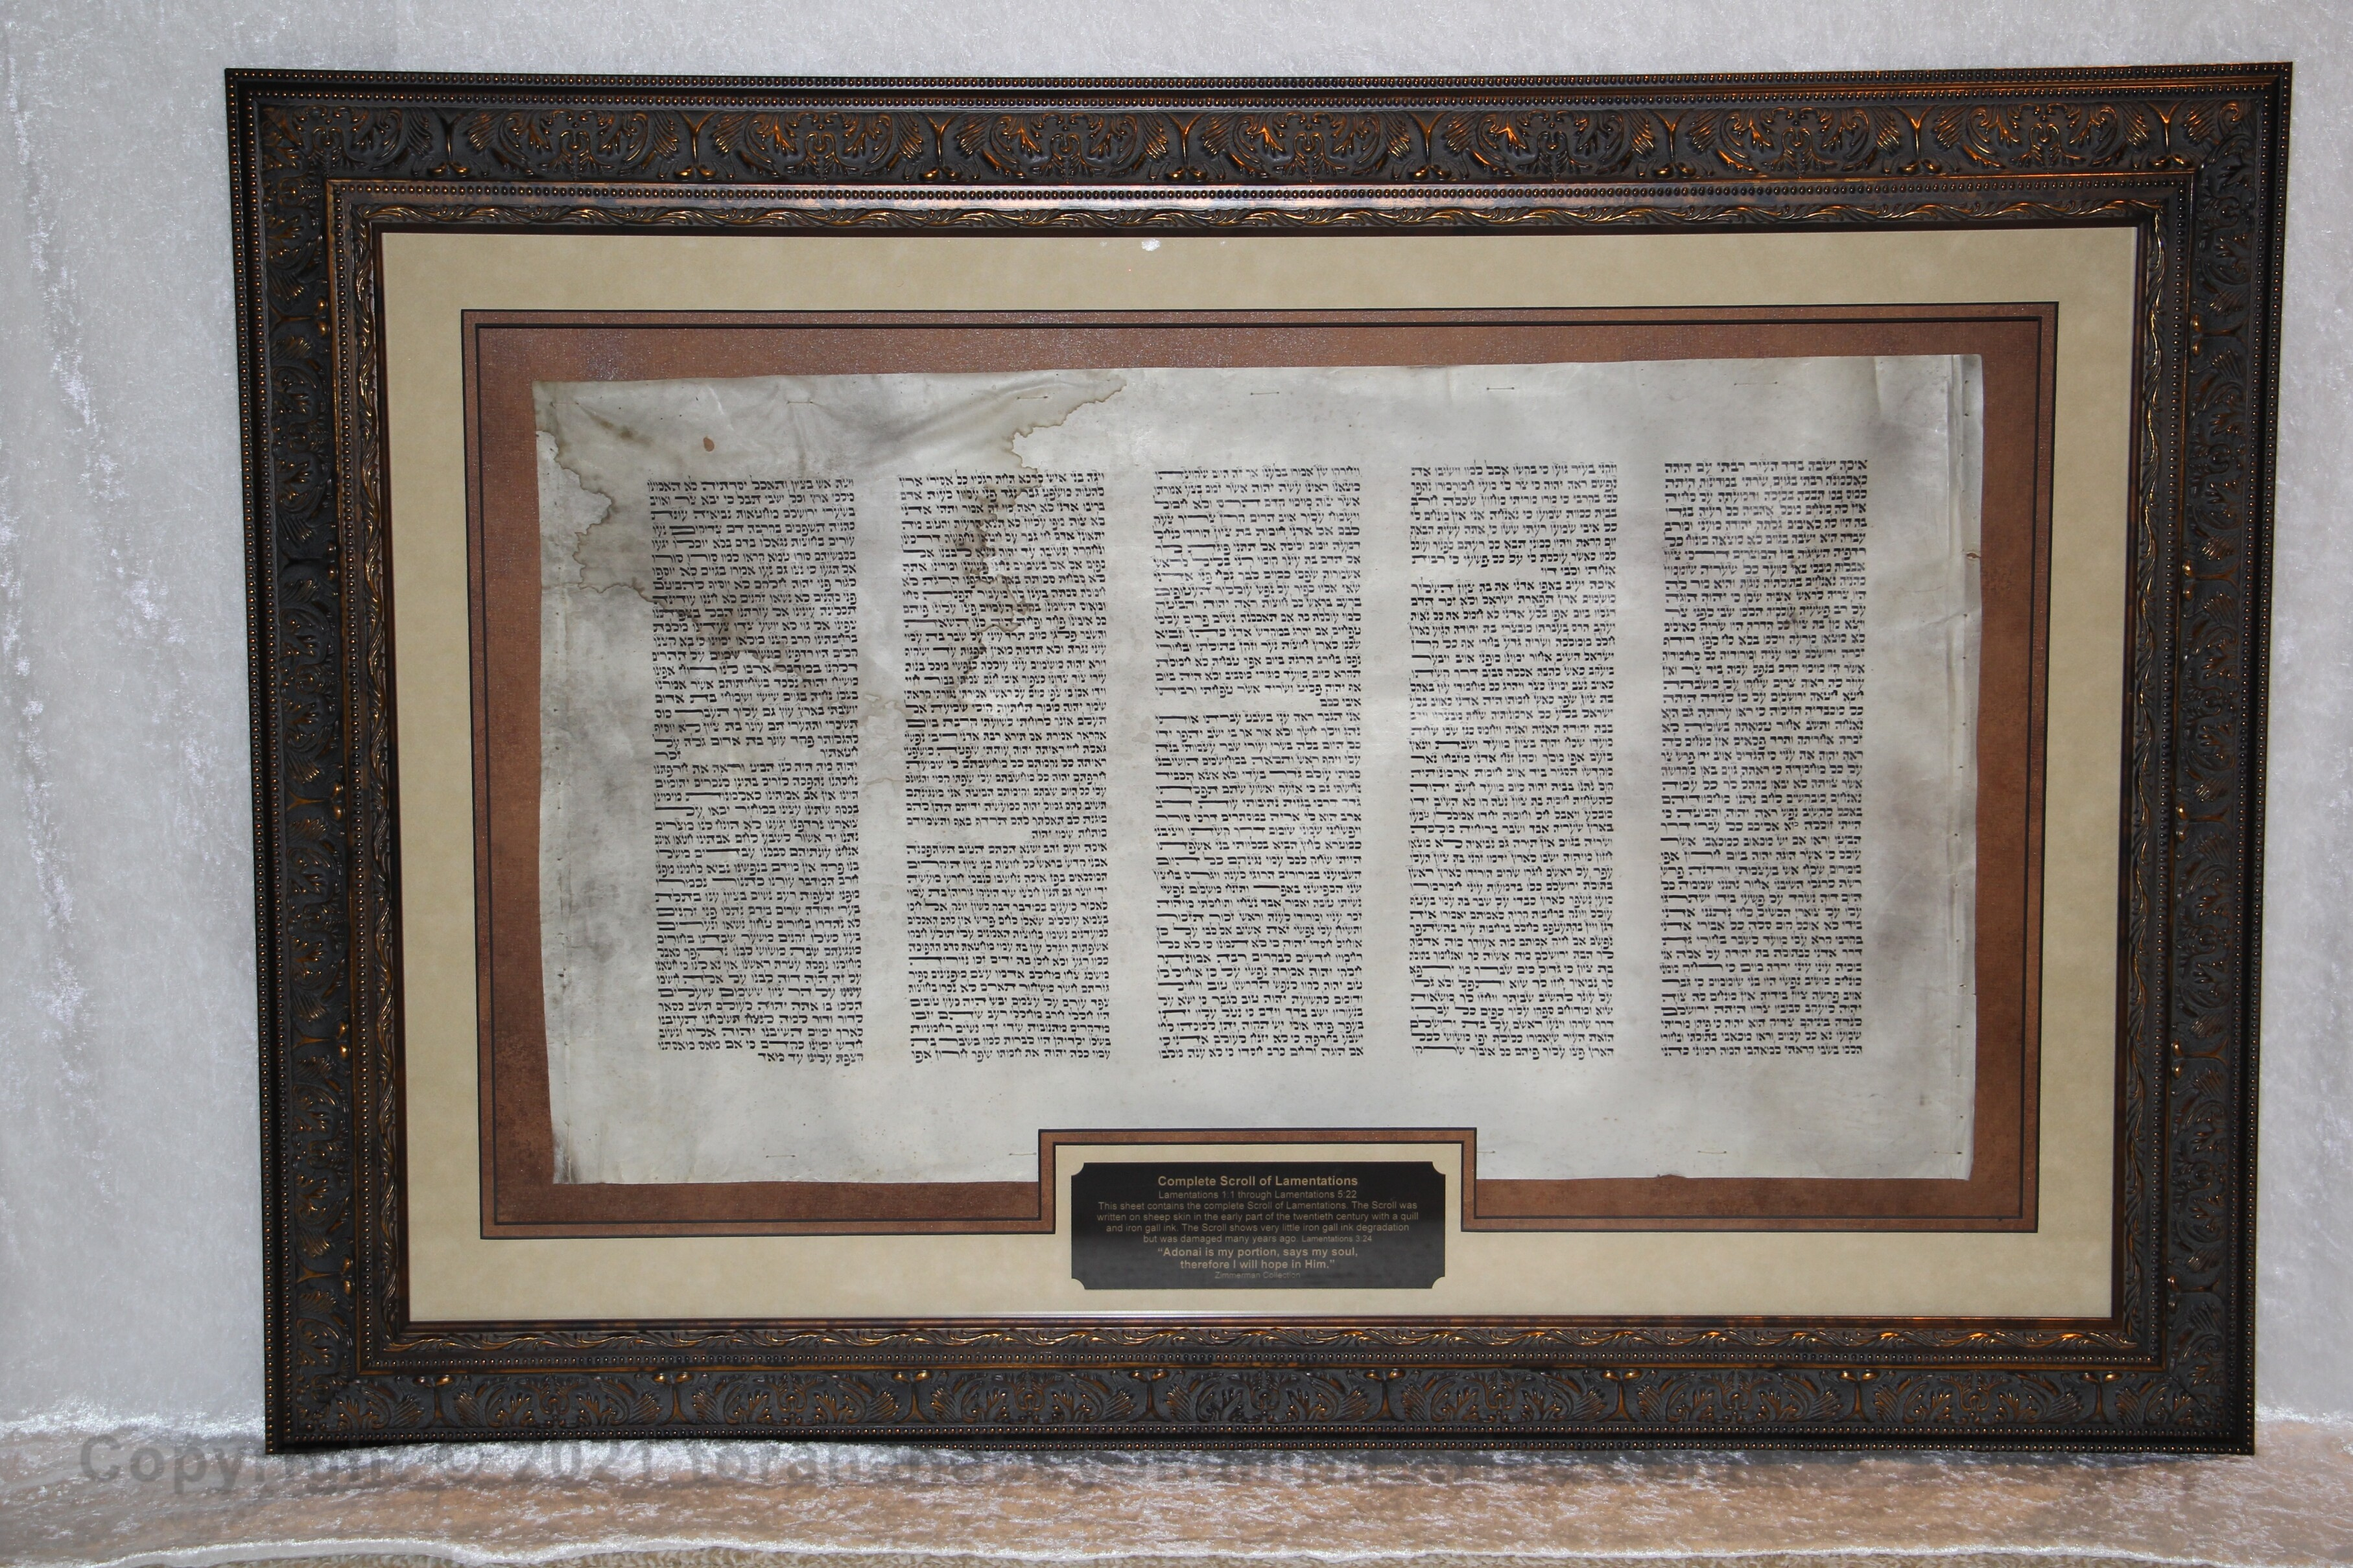 Framed Complete sheepskin Scroll of Lamentations damaged in the Holocaust